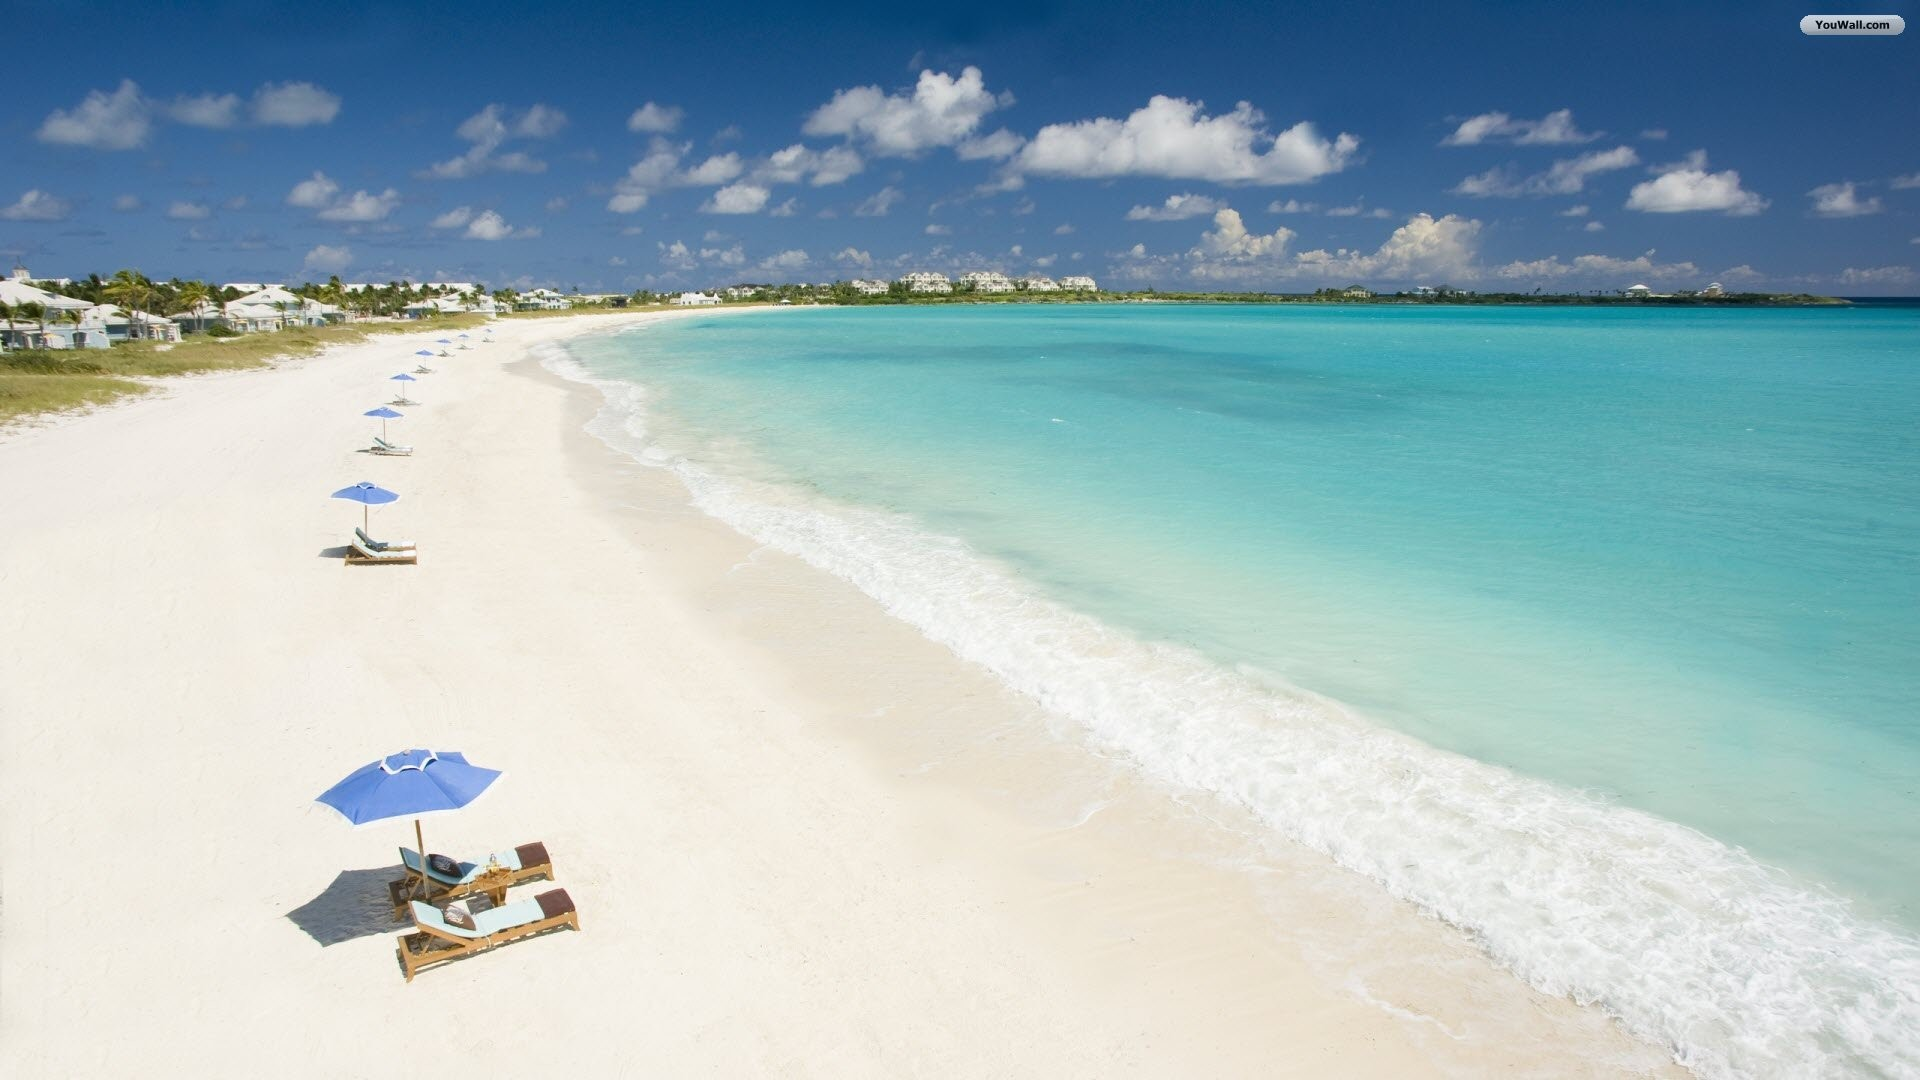 Caribbean Beach Wallpaper